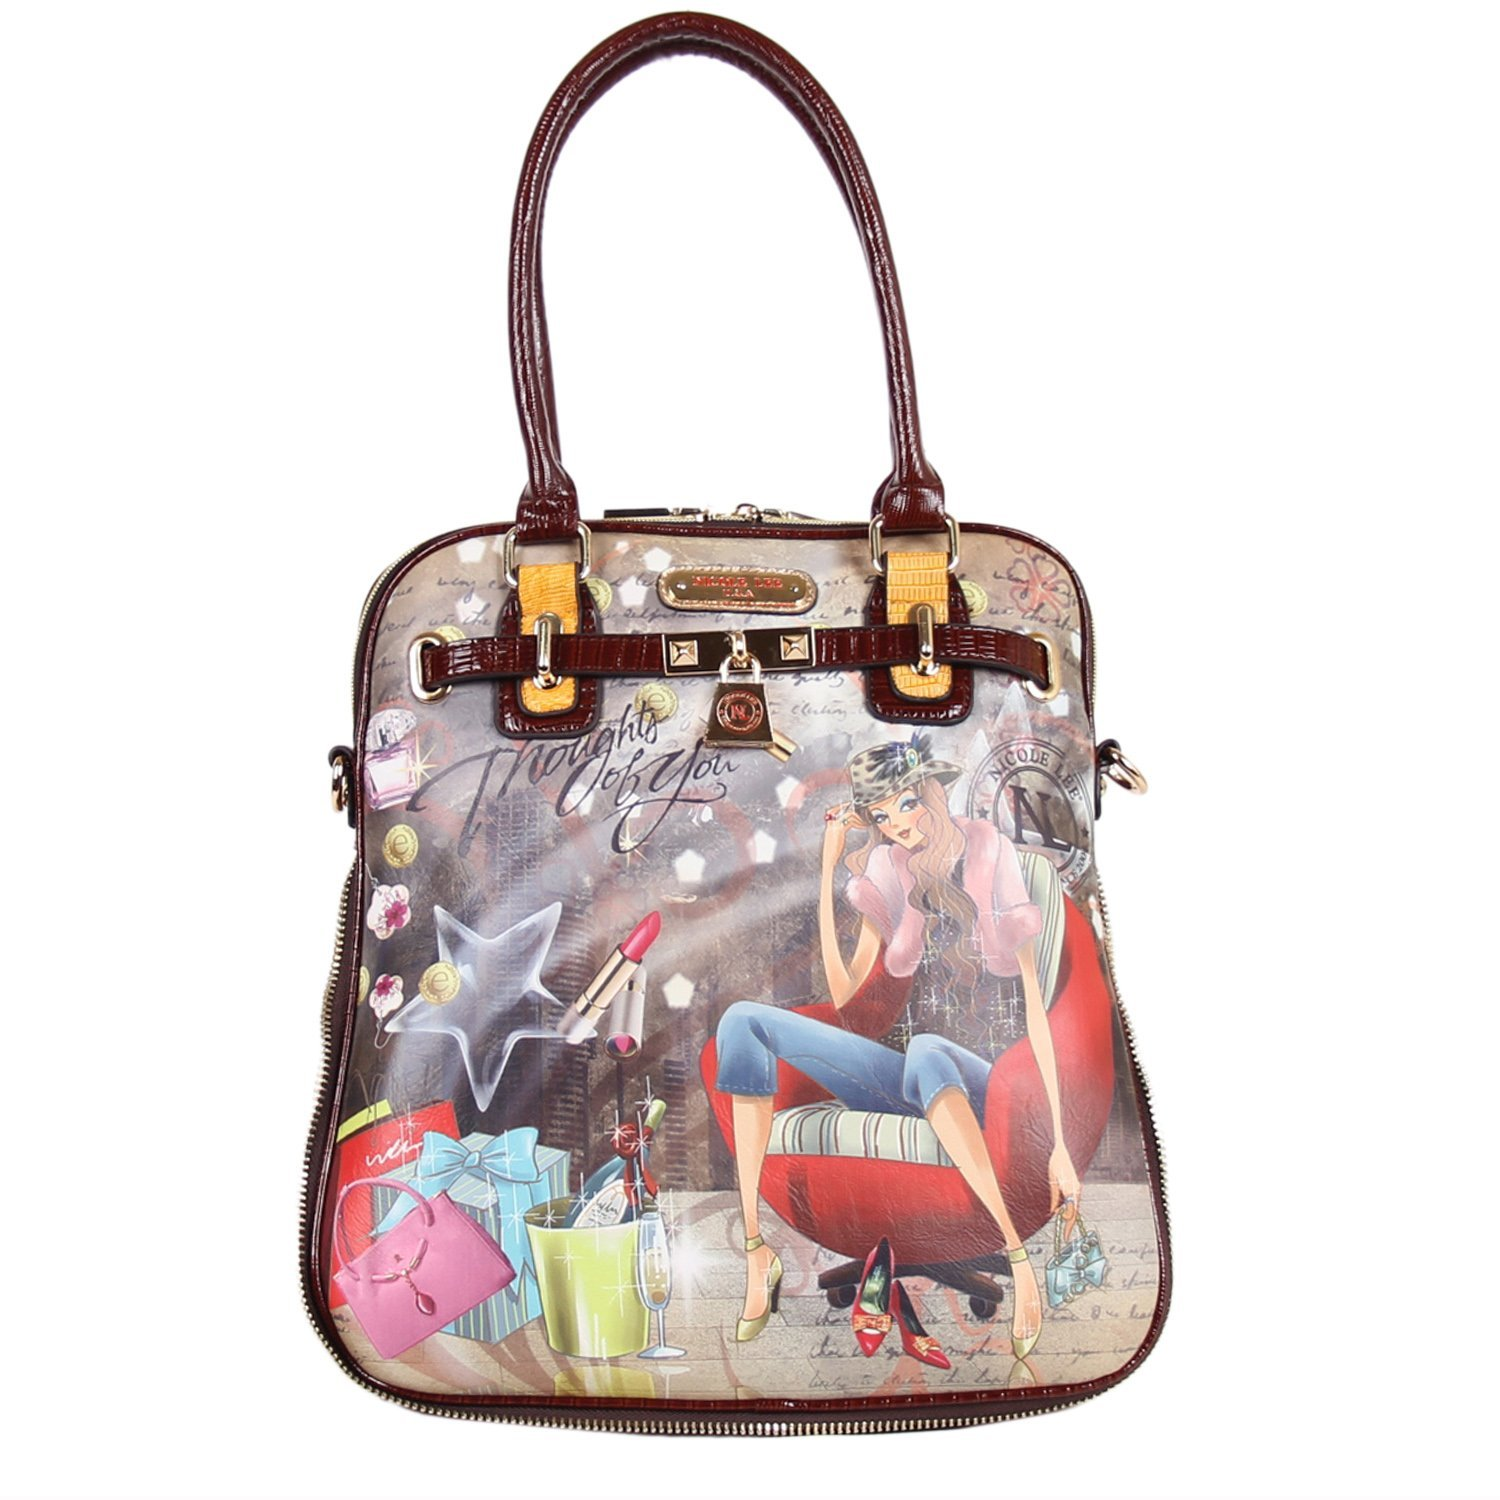 Nicole Lee PAOLA PRINT TOTE BAG ( Thoughts of You )